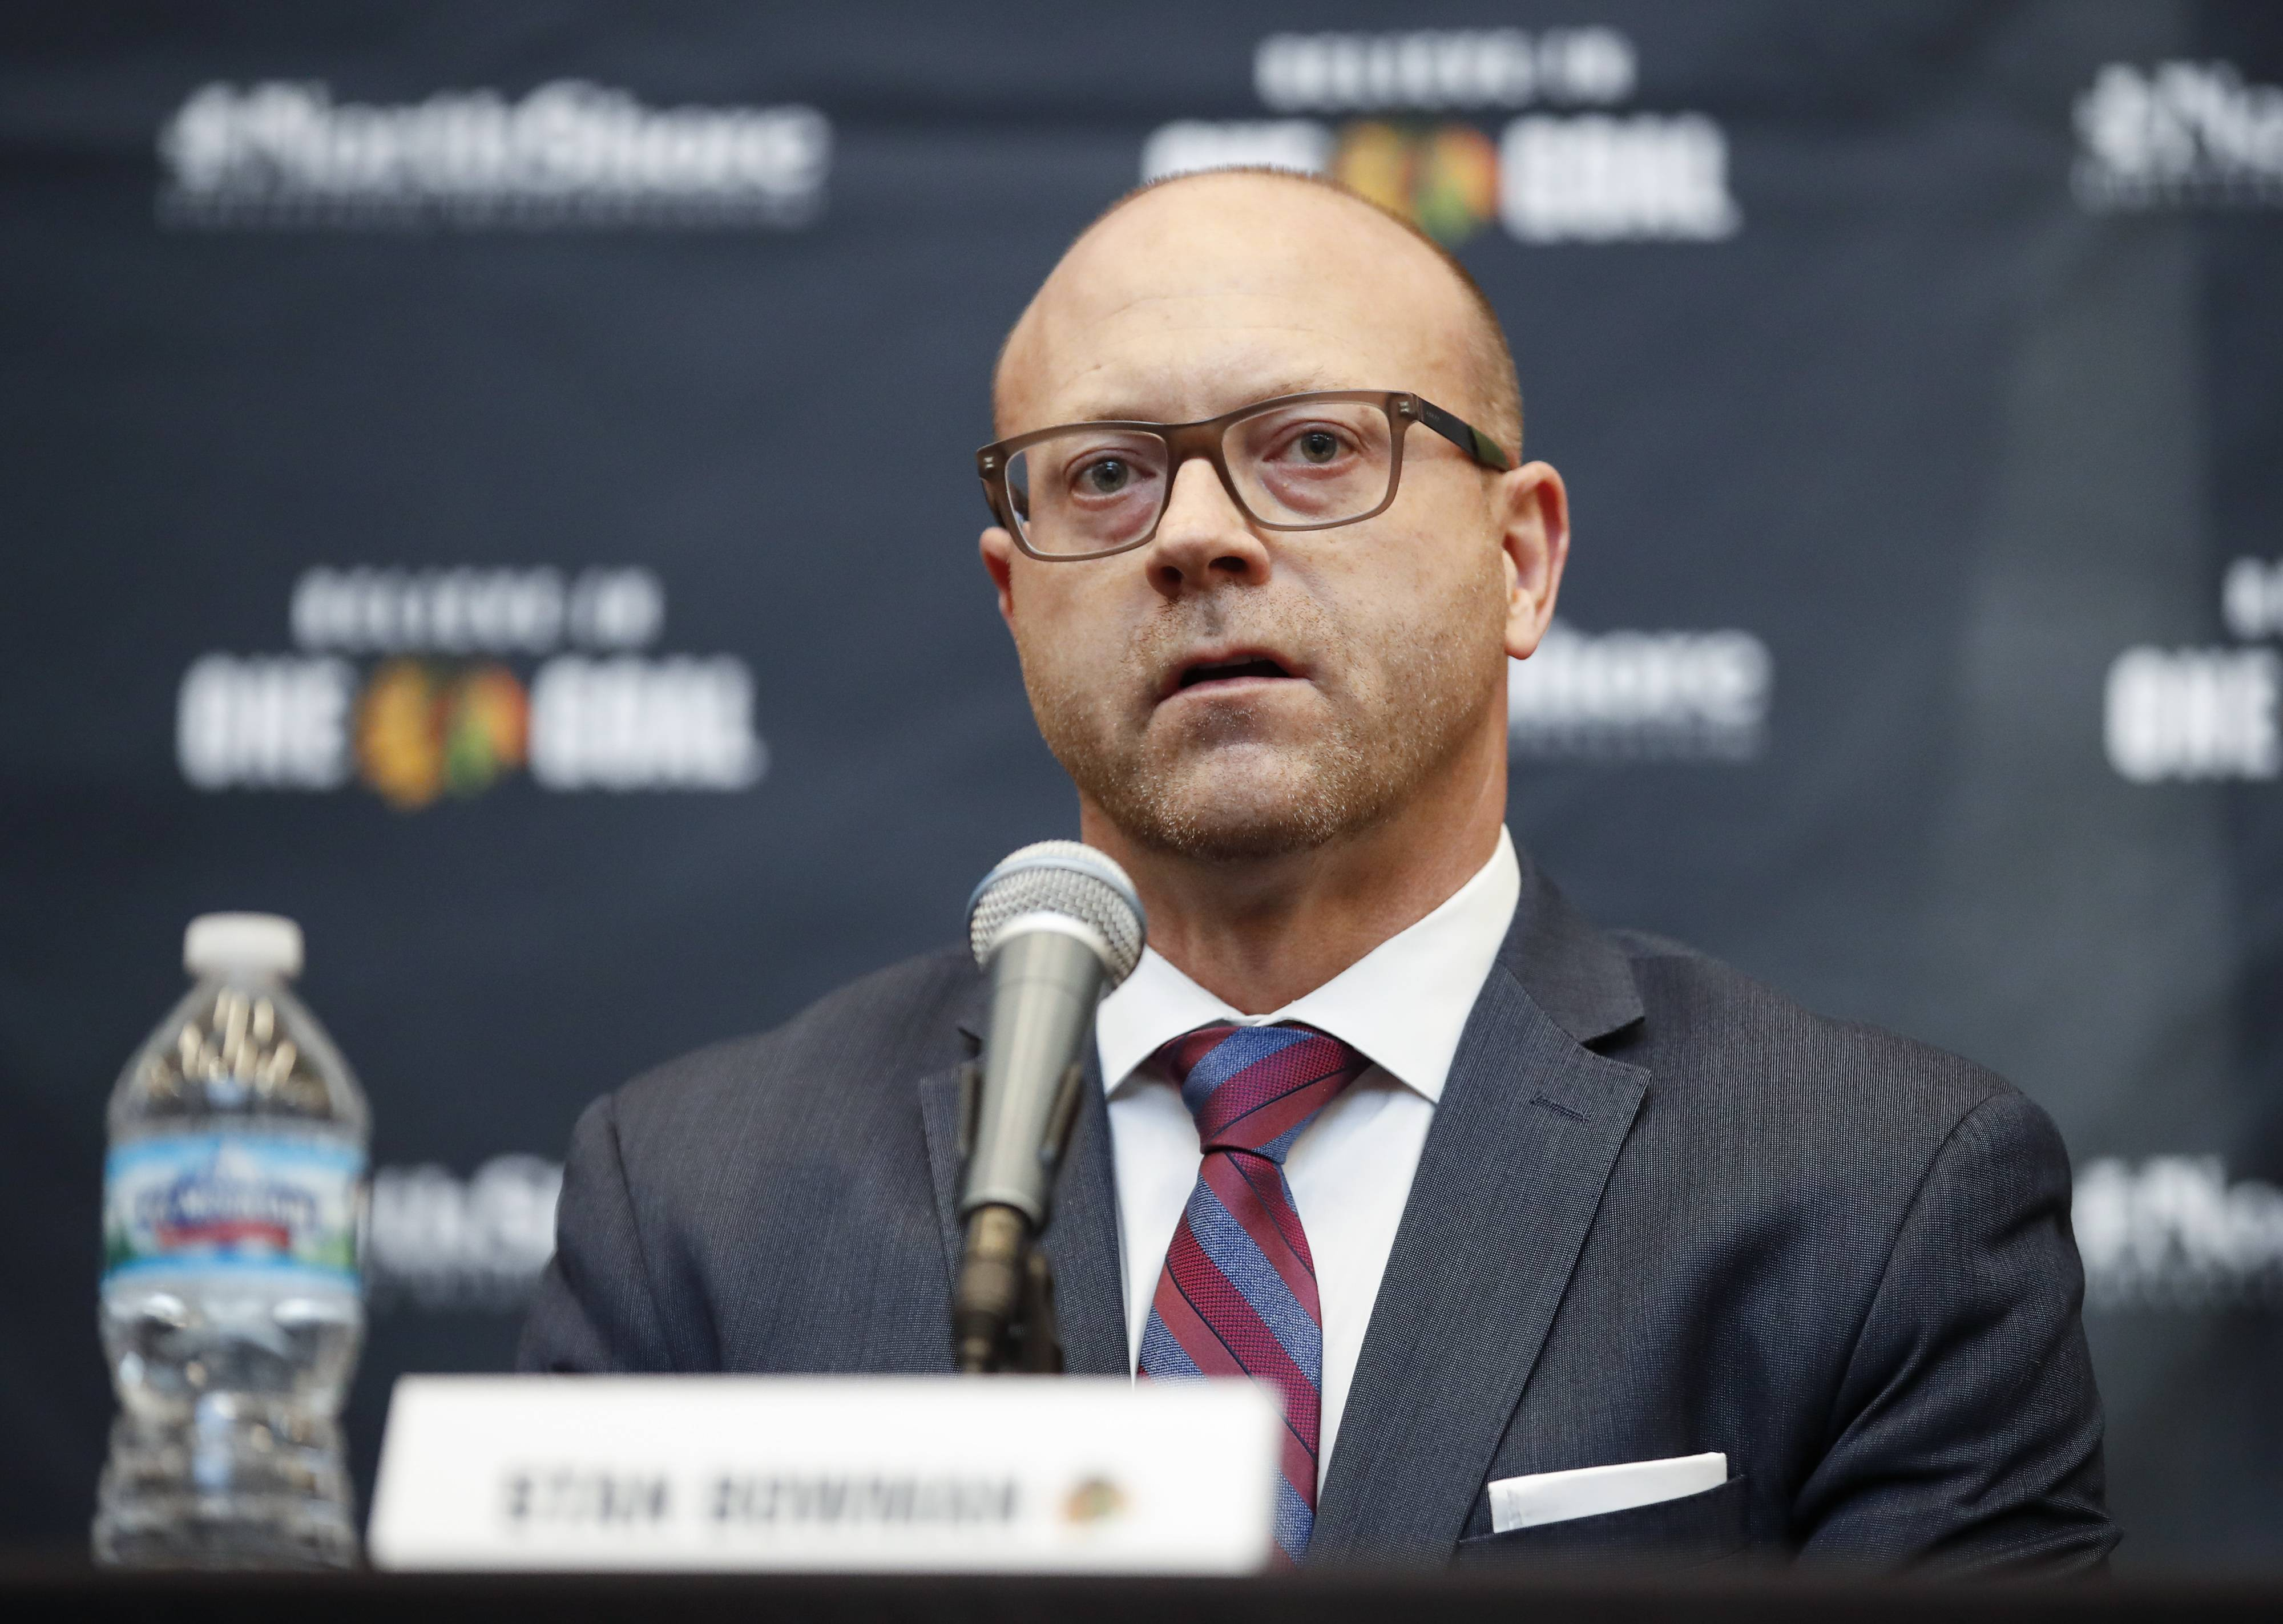 Blackhawks Senior Vice President and General Manager Stan Bowman speaks with reporters last week after Joel Quenneville was fired and Jeremy Colliton was named coach.